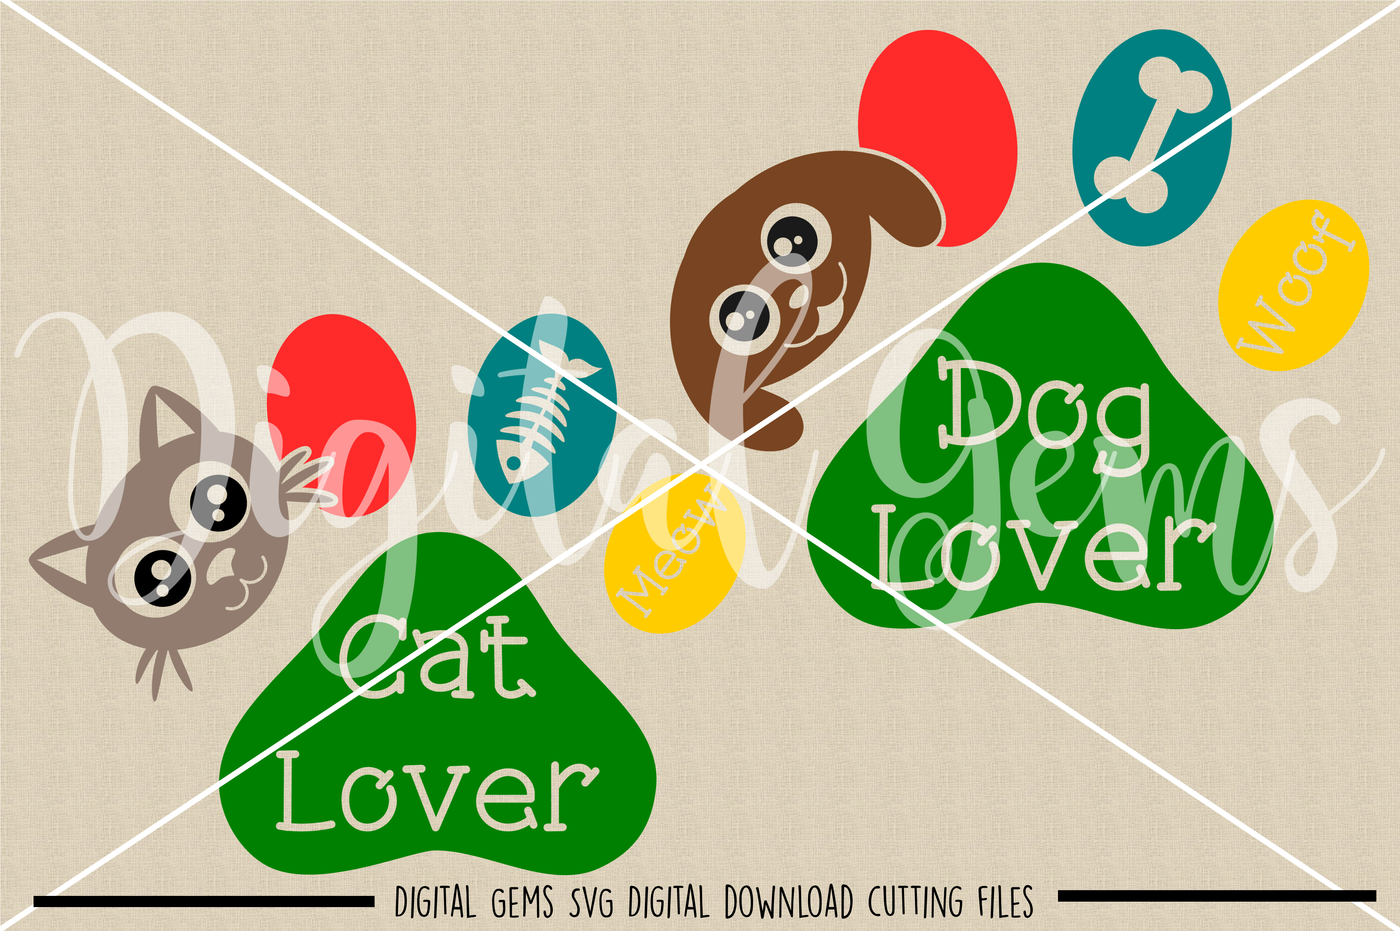 Cat And Dog Lover Svg Dxf Eps Png Files By Digital Gems